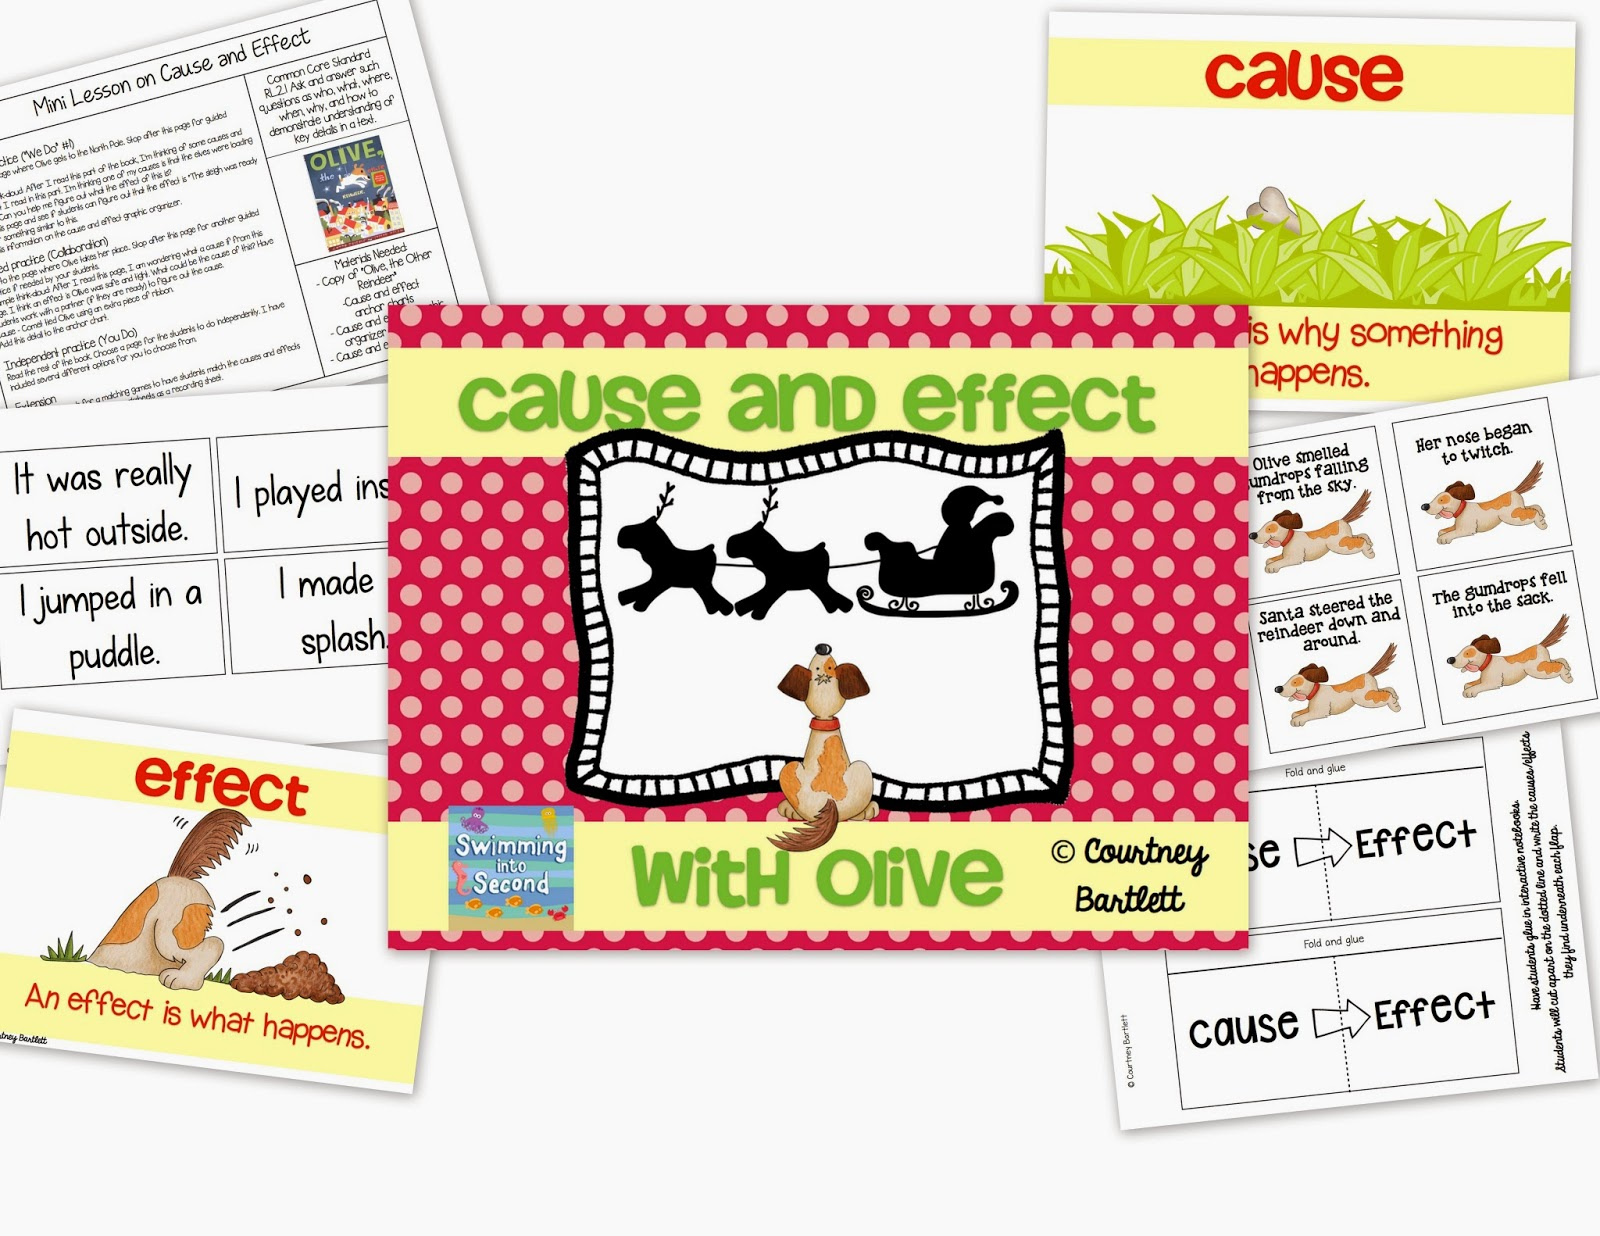 http://www.teacherspayteachers.com/Product/Cause-and-Effect-minilesson-with-Olive-the-Other-Reindeer-1585863